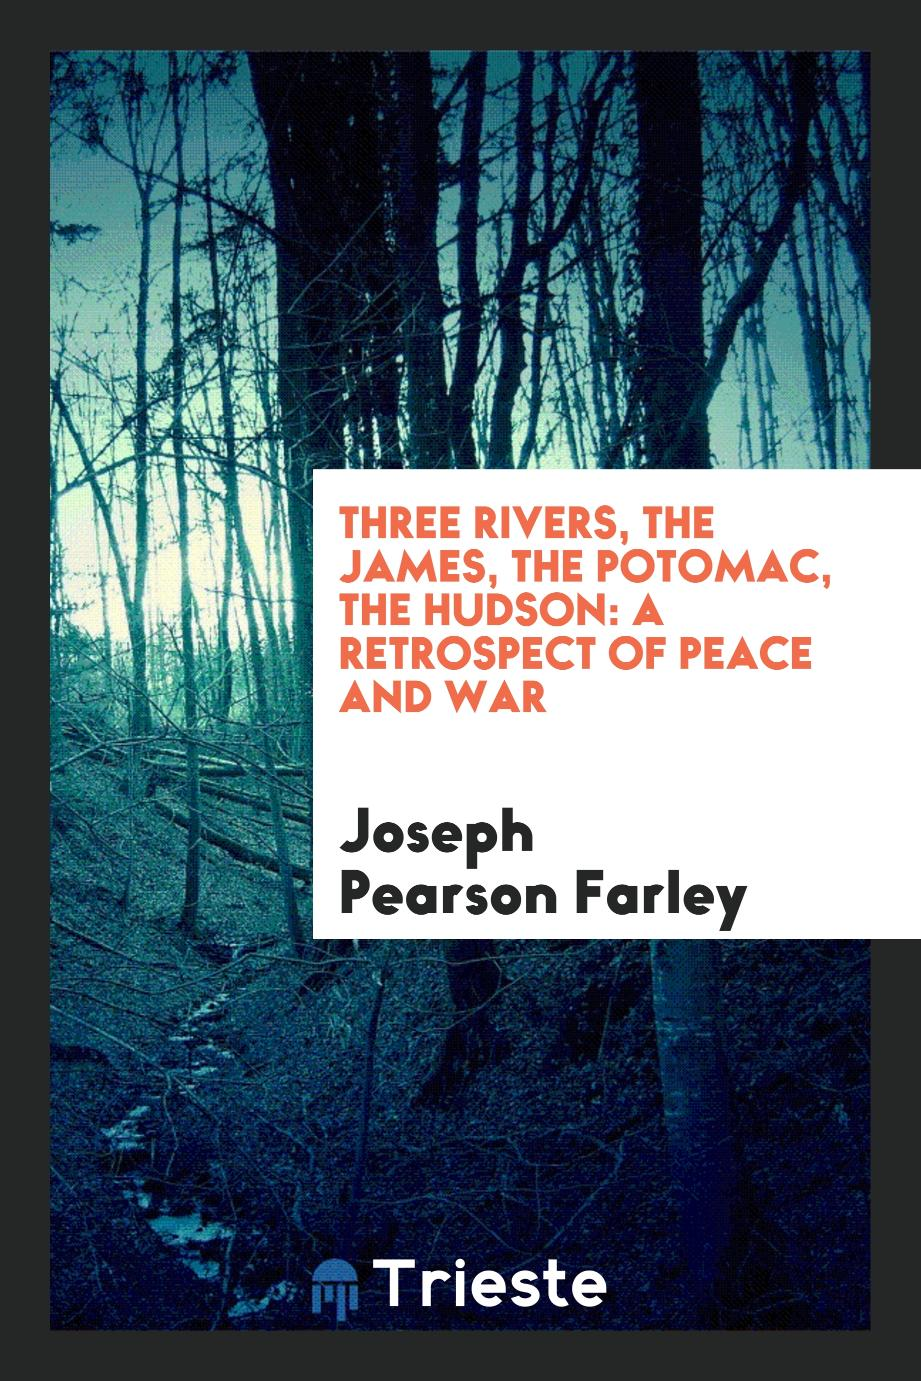 Three Rivers, the James, the Potomac, the Hudson: A Retrospect of Peace and War